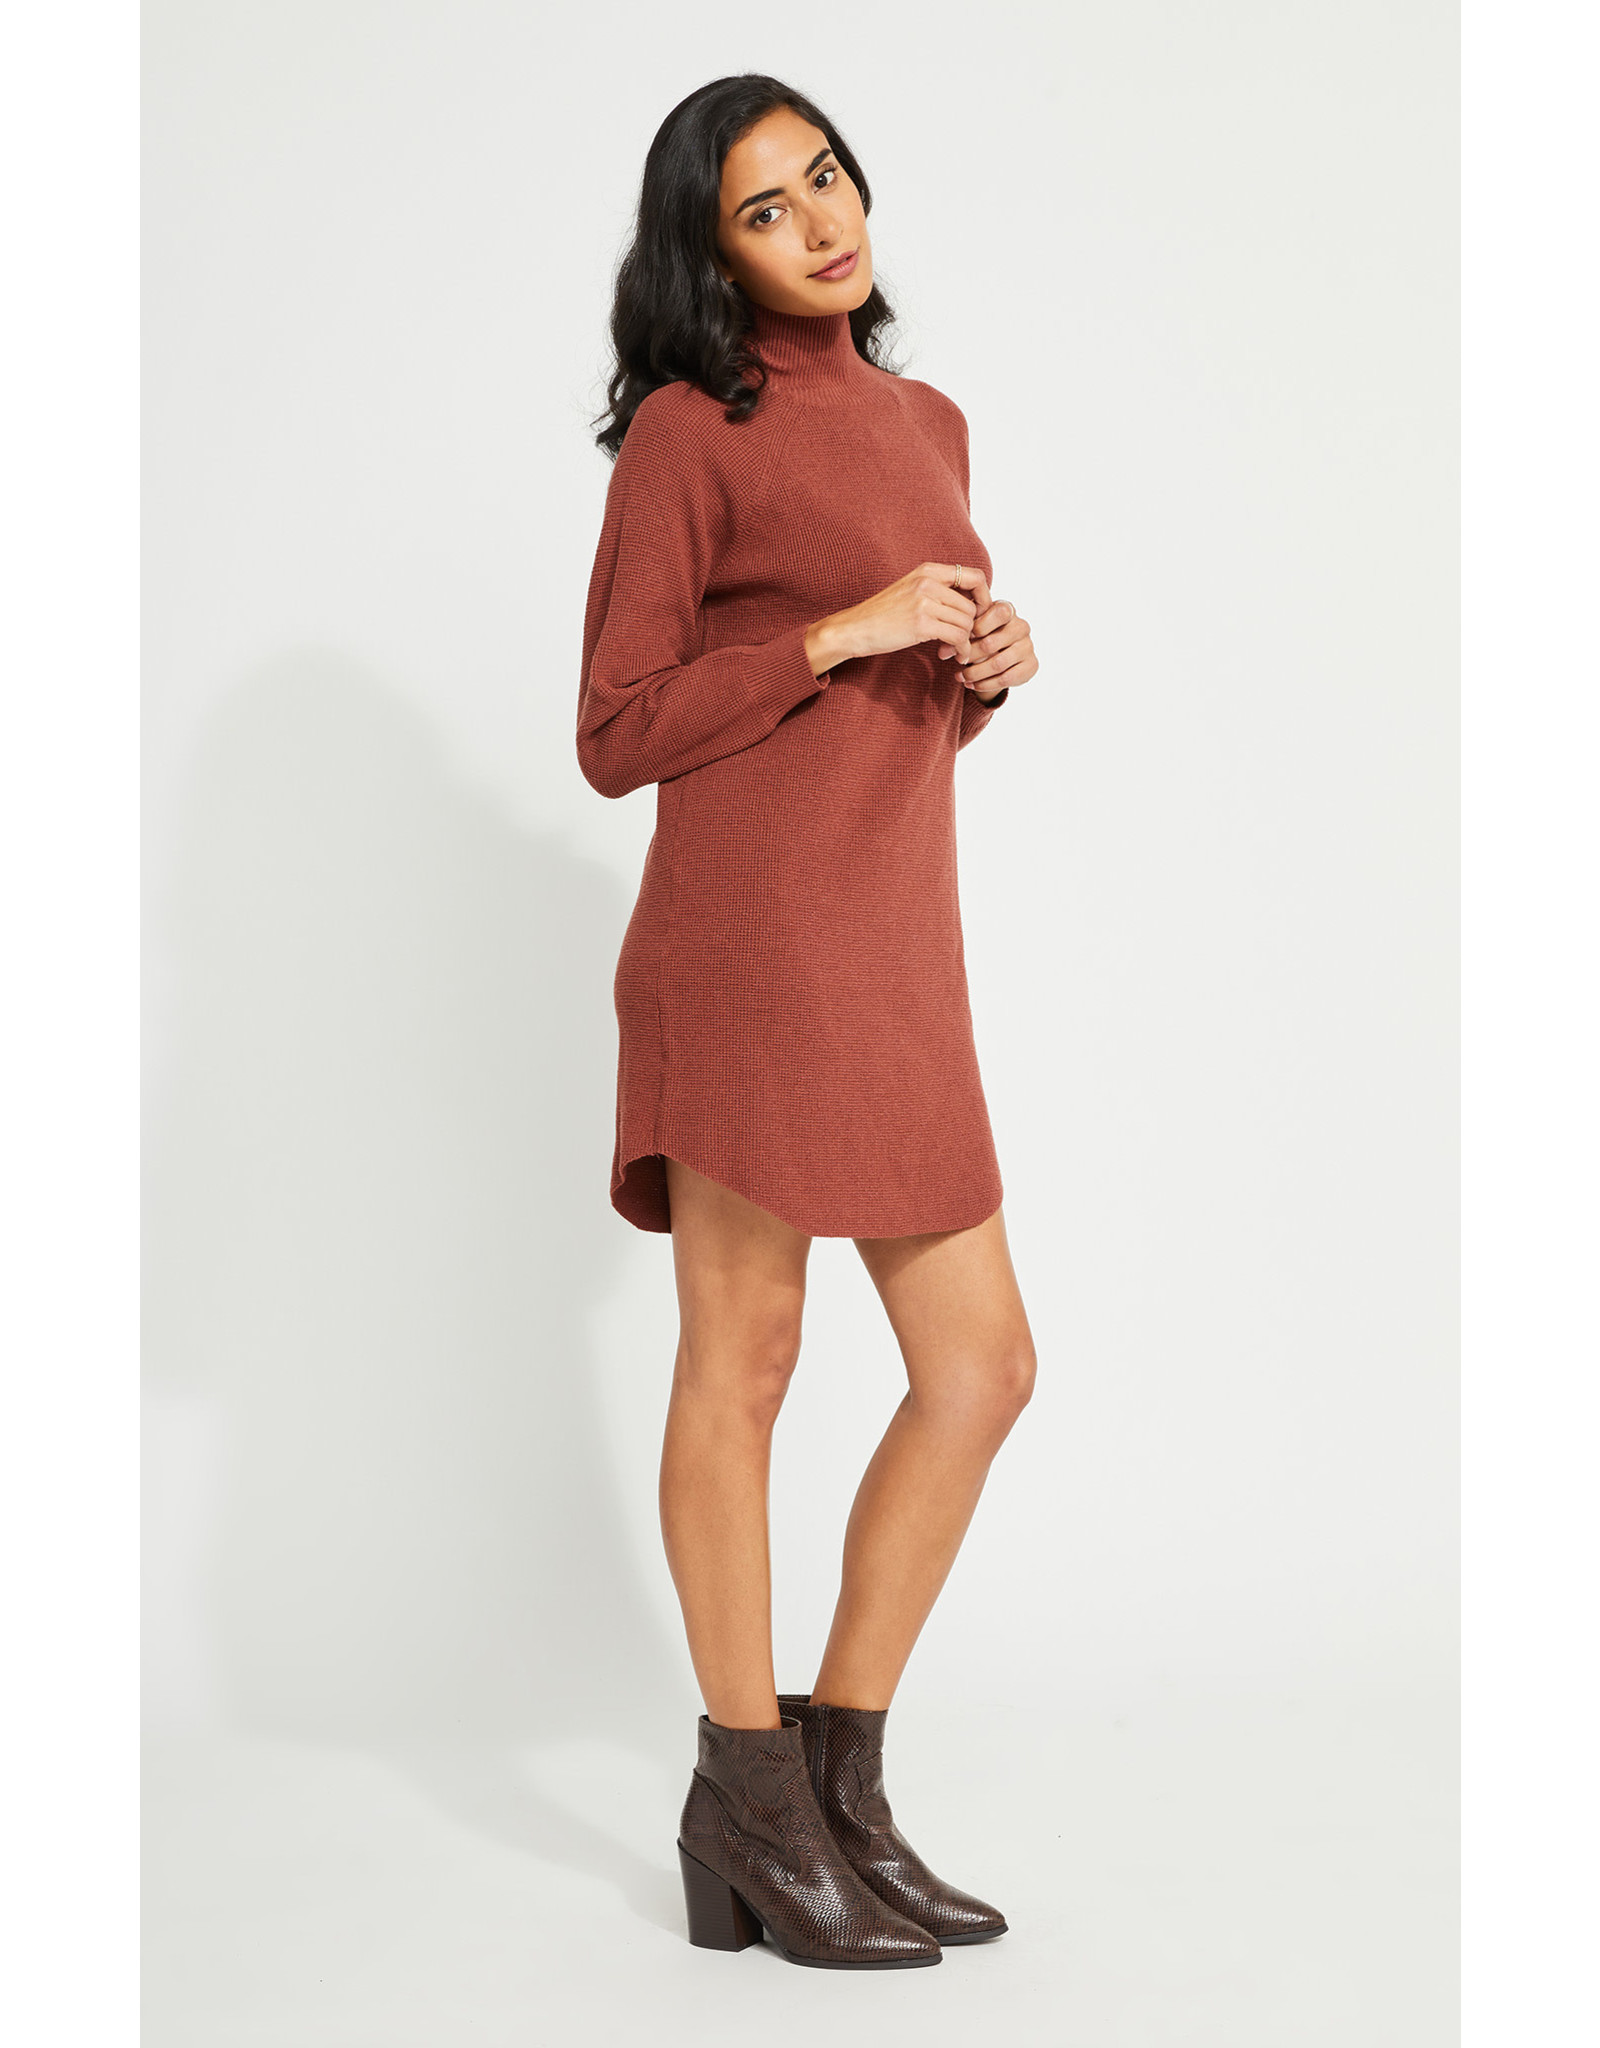 Gentle Fawn - Autumn Dress